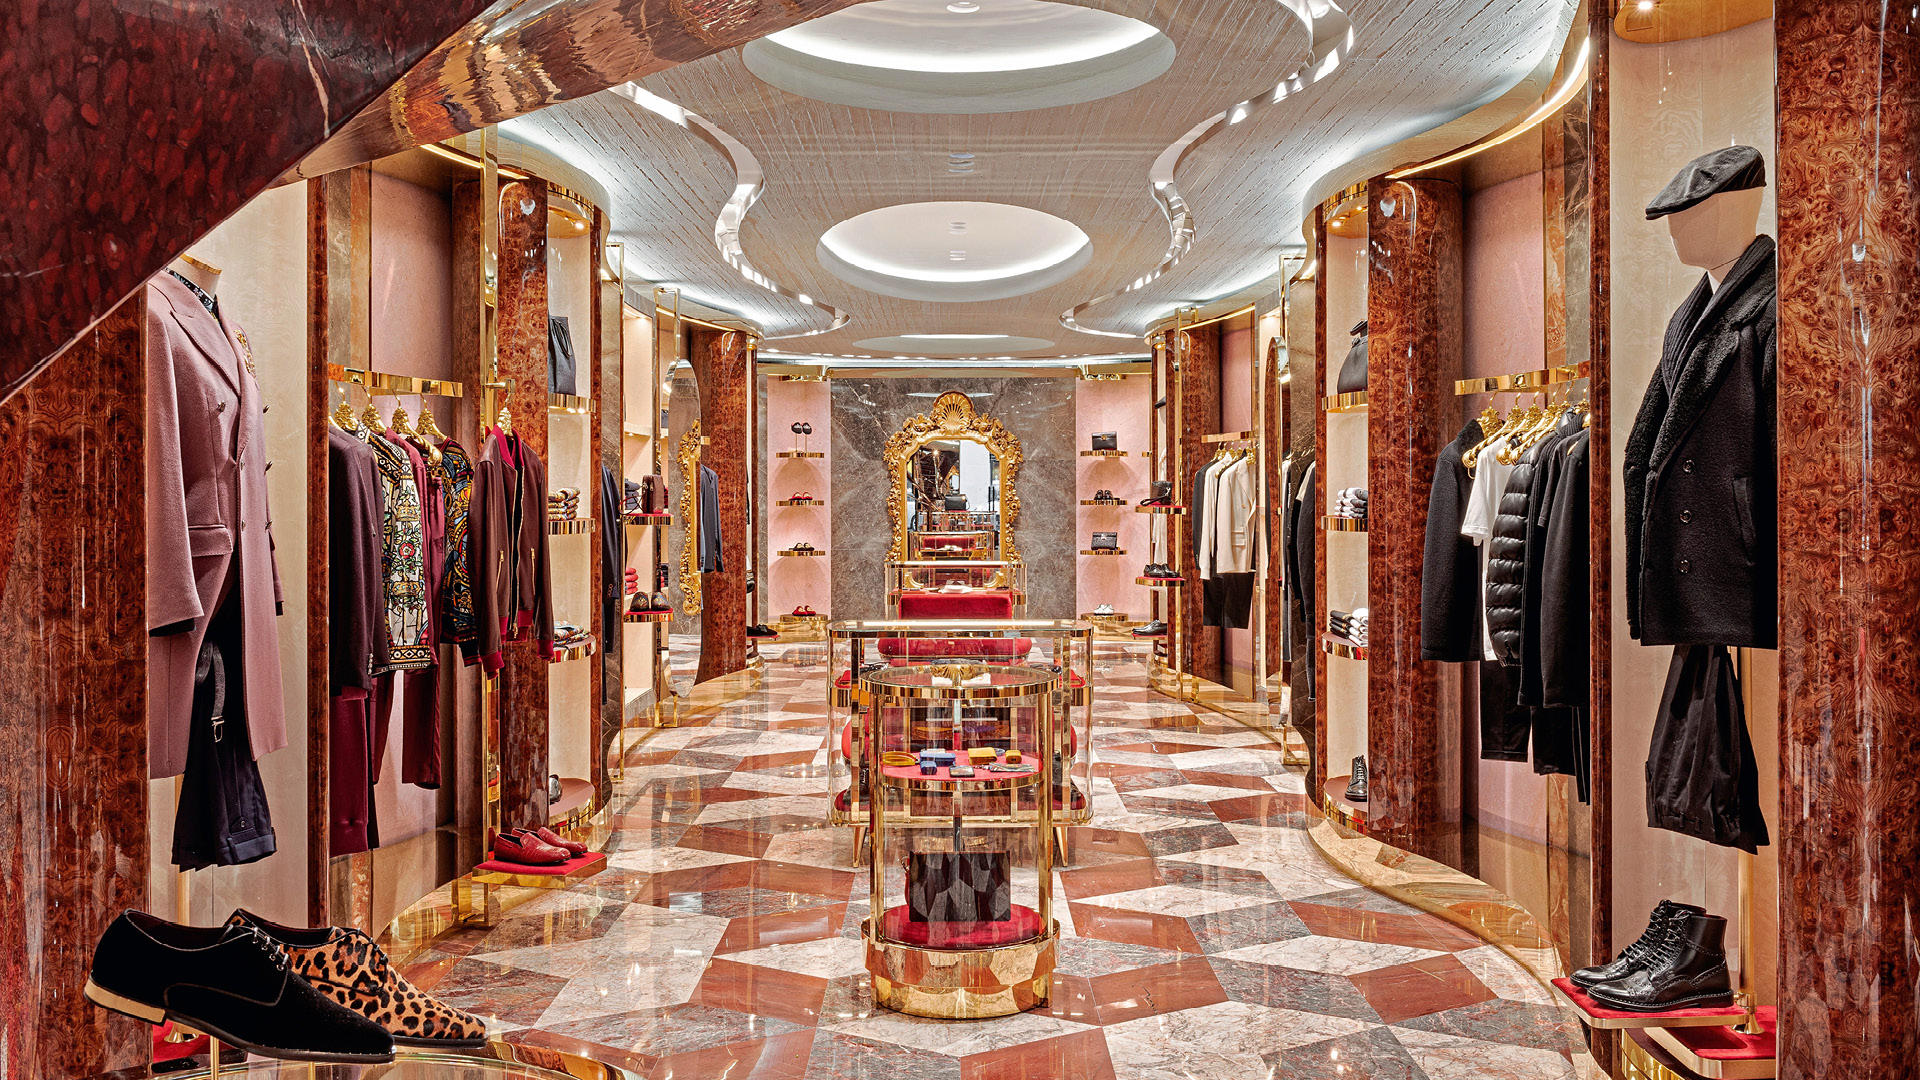 This Dolce & Gabbana Boutique In Paris Is A Cultural Marvel